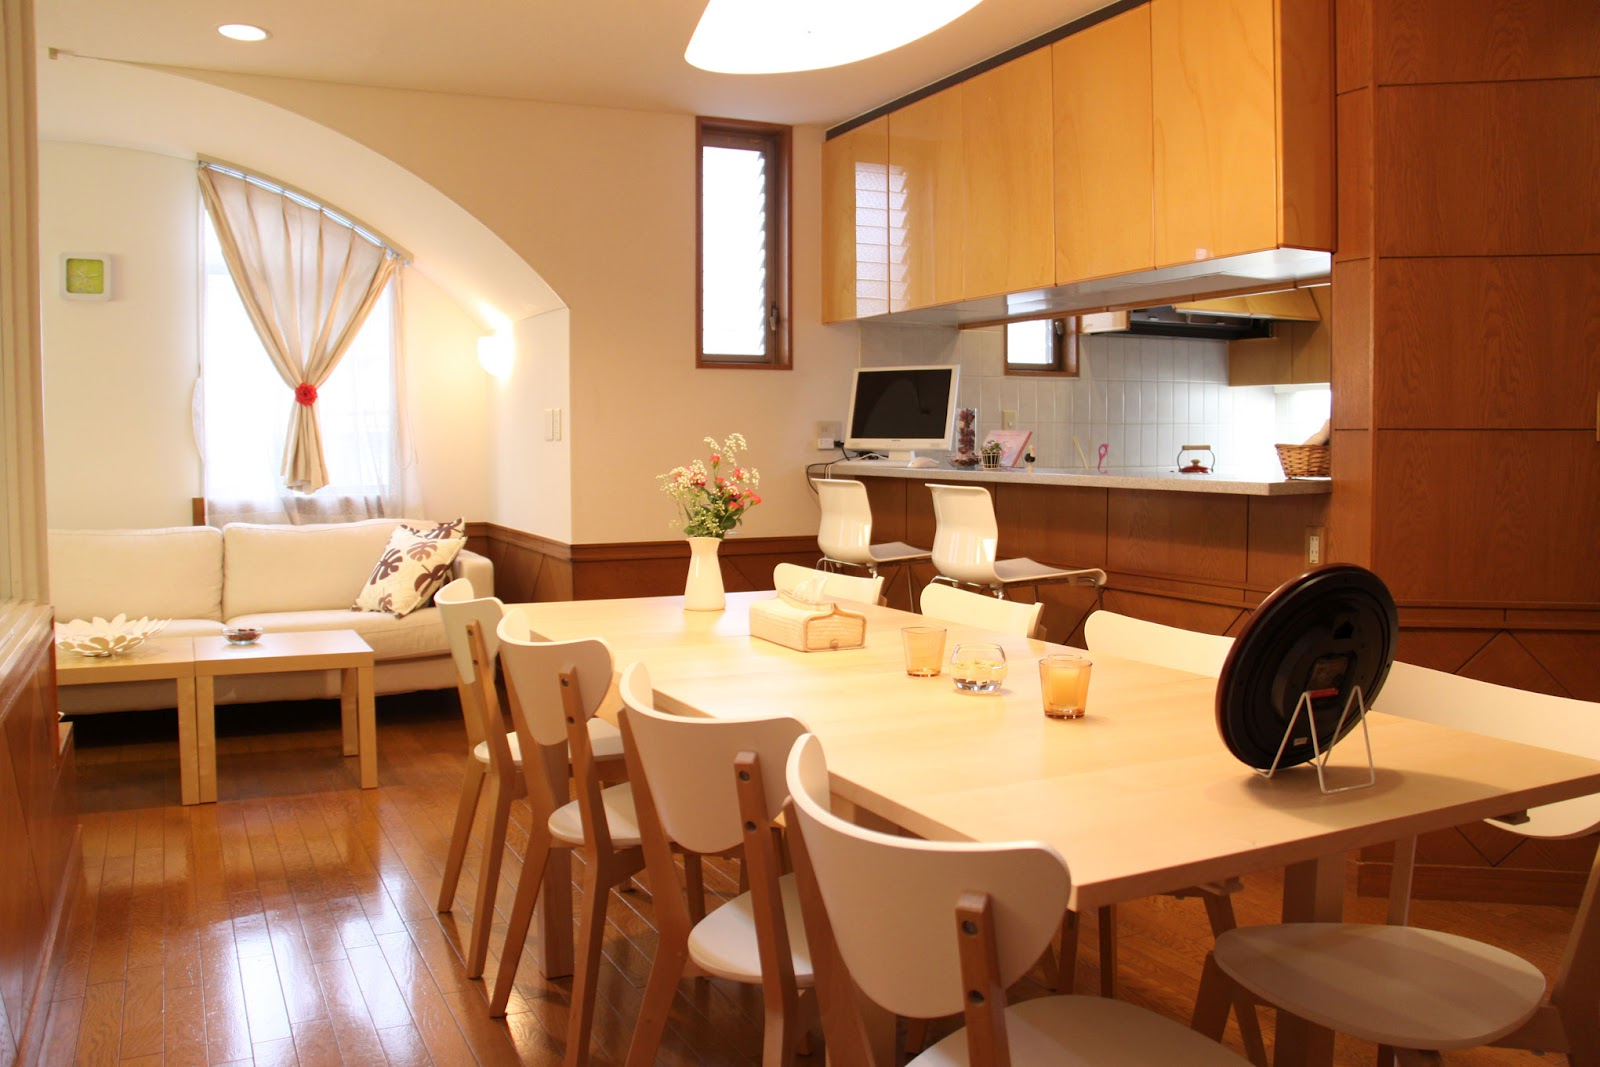 Share House Guest Japan Dining Living Accommodation